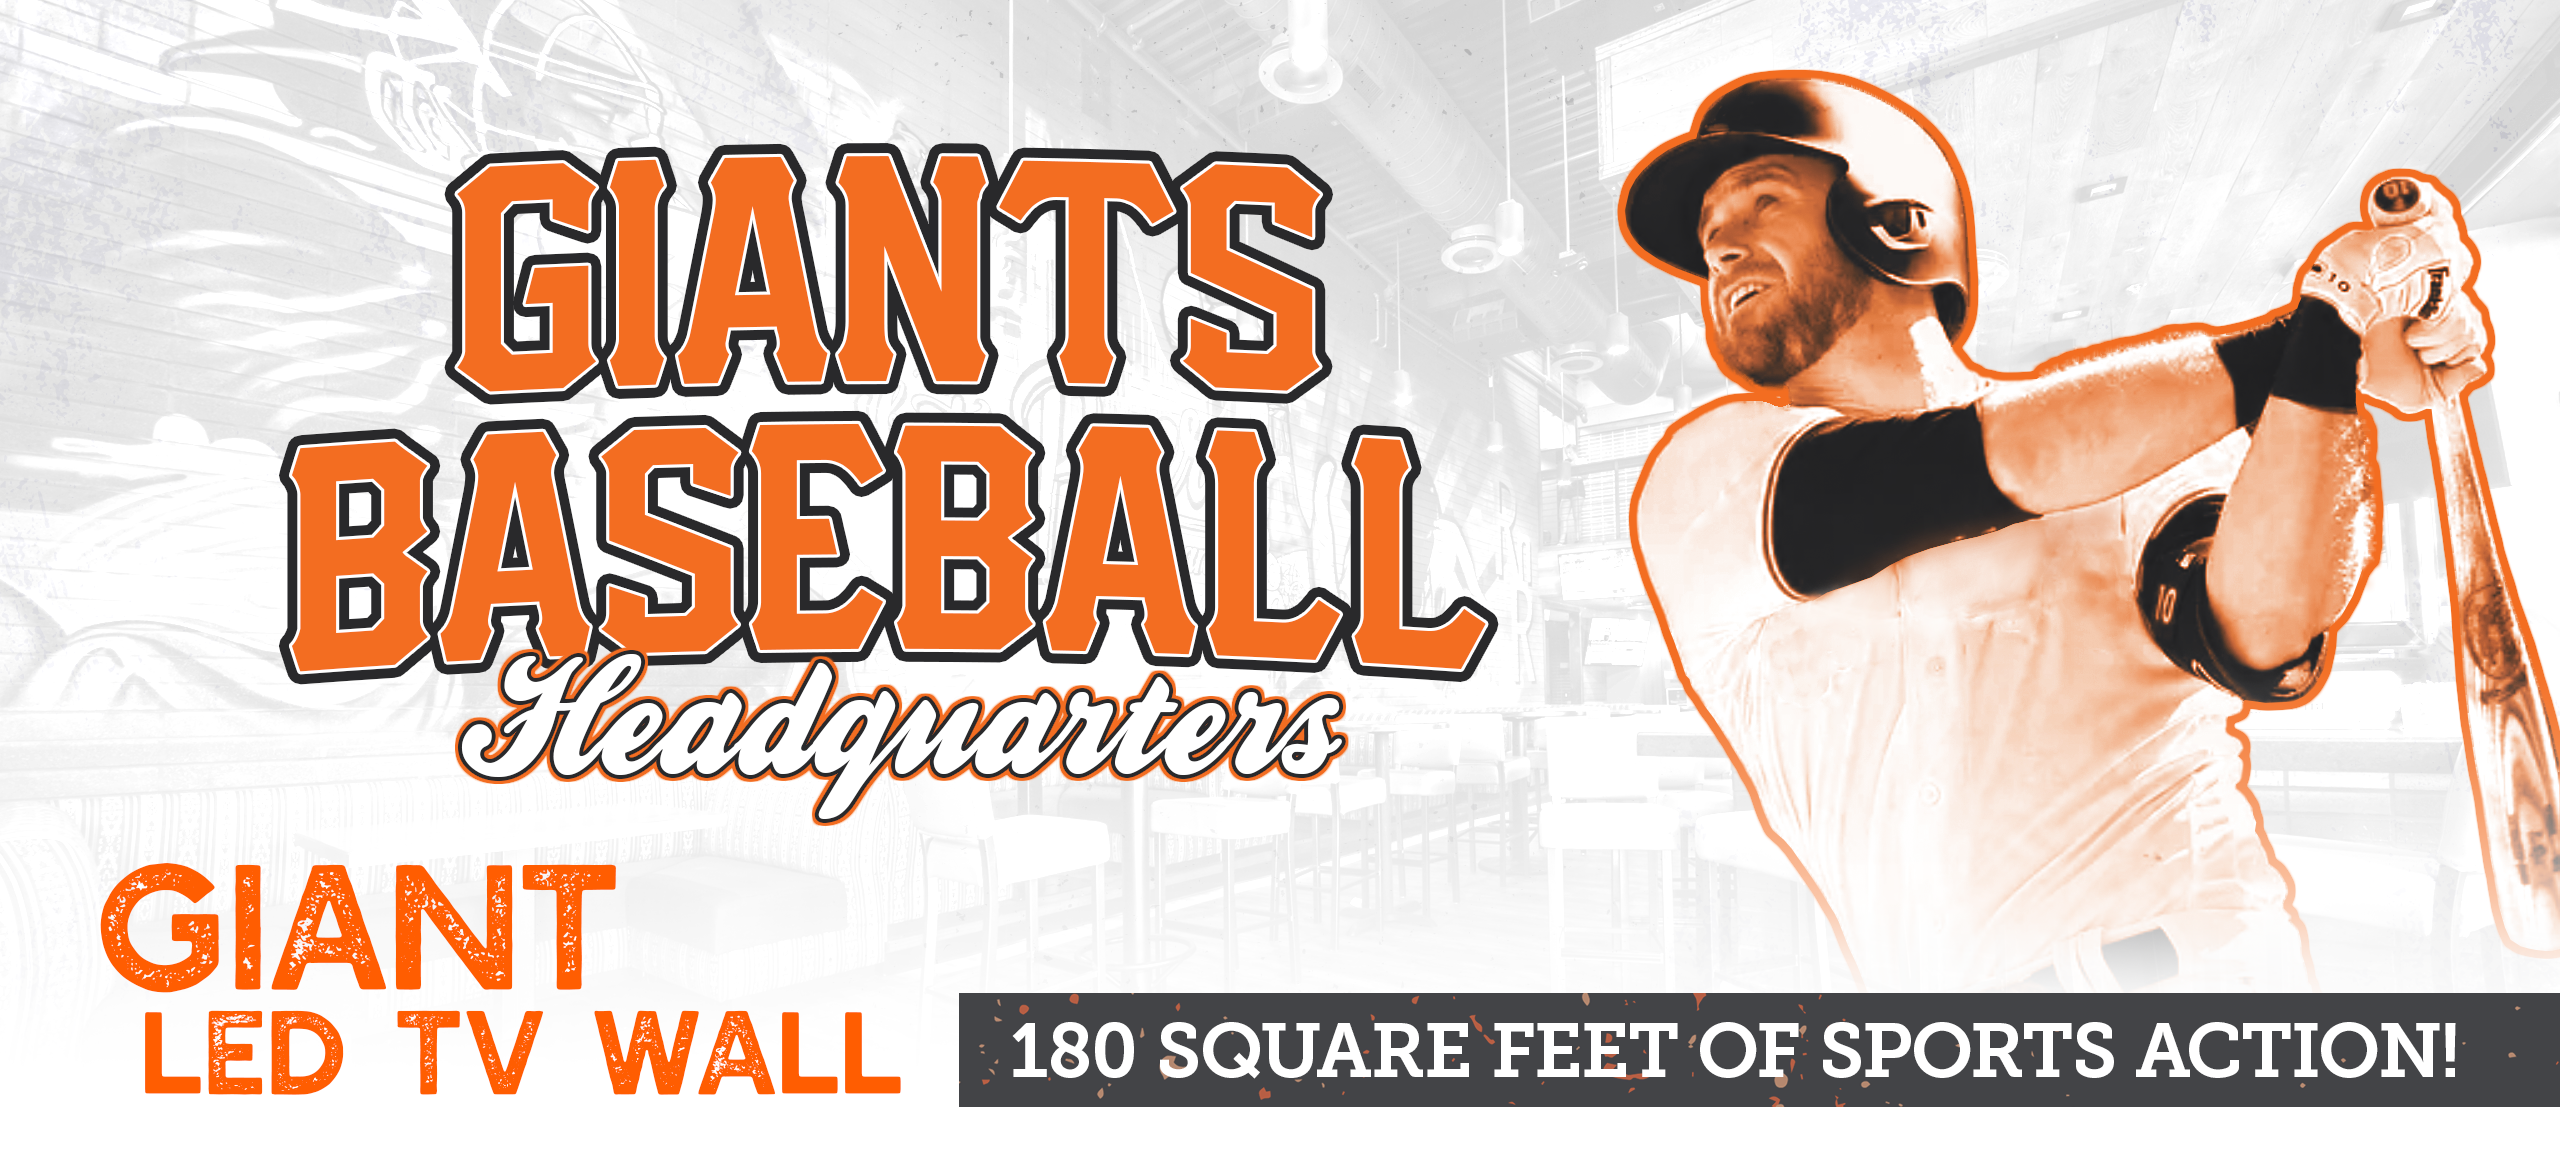 RnR-Giants-Baseball-Headquarters-Web-Banner-2560x1151